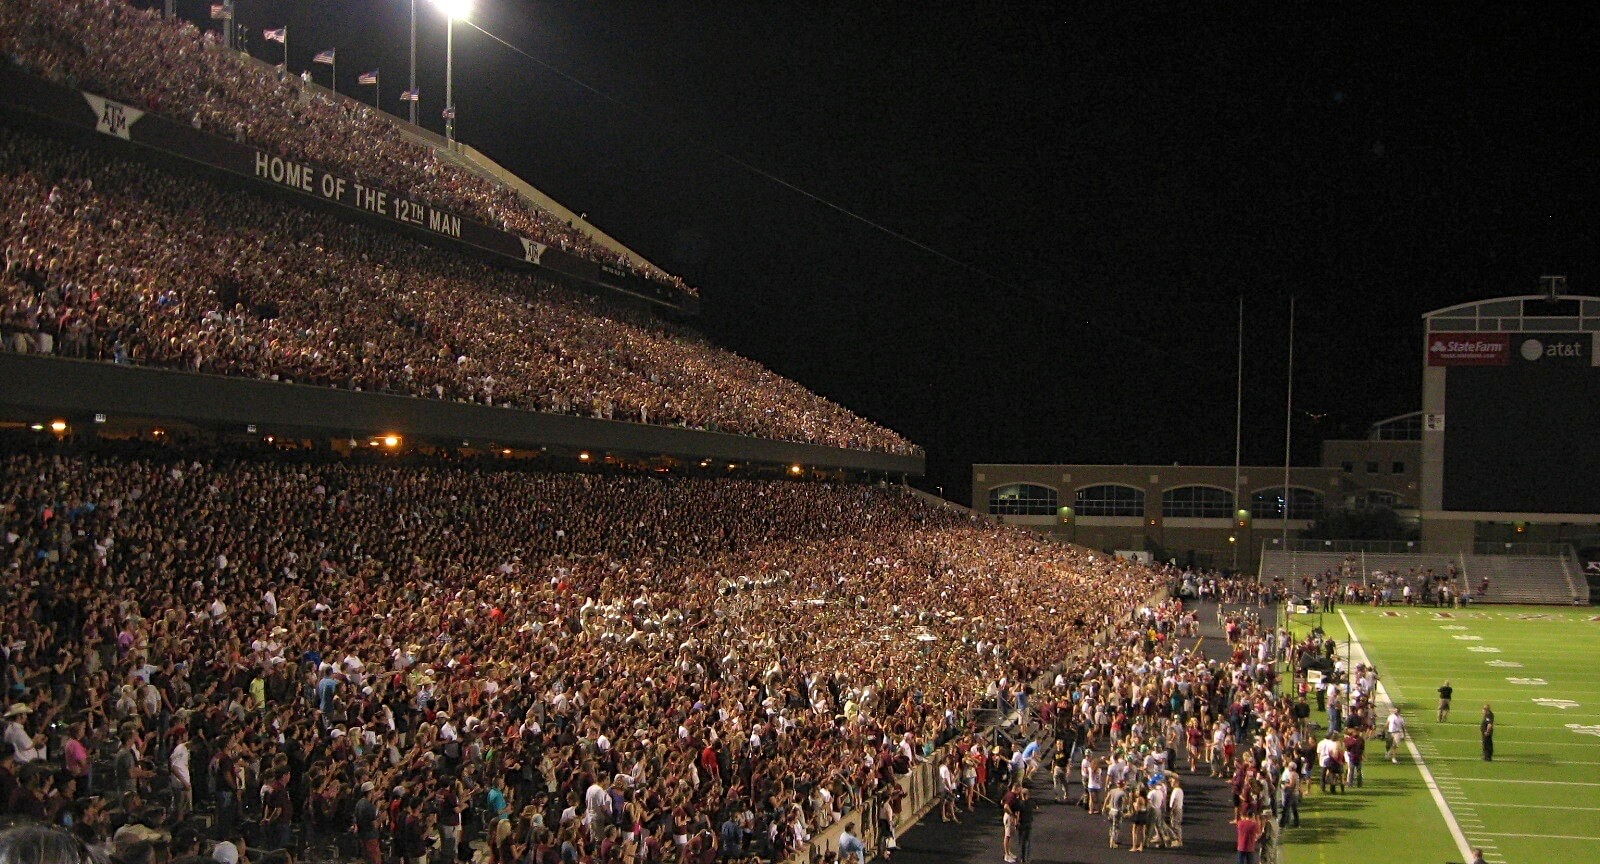 Texas A&M Midnight Yell photo by Kathy Miller